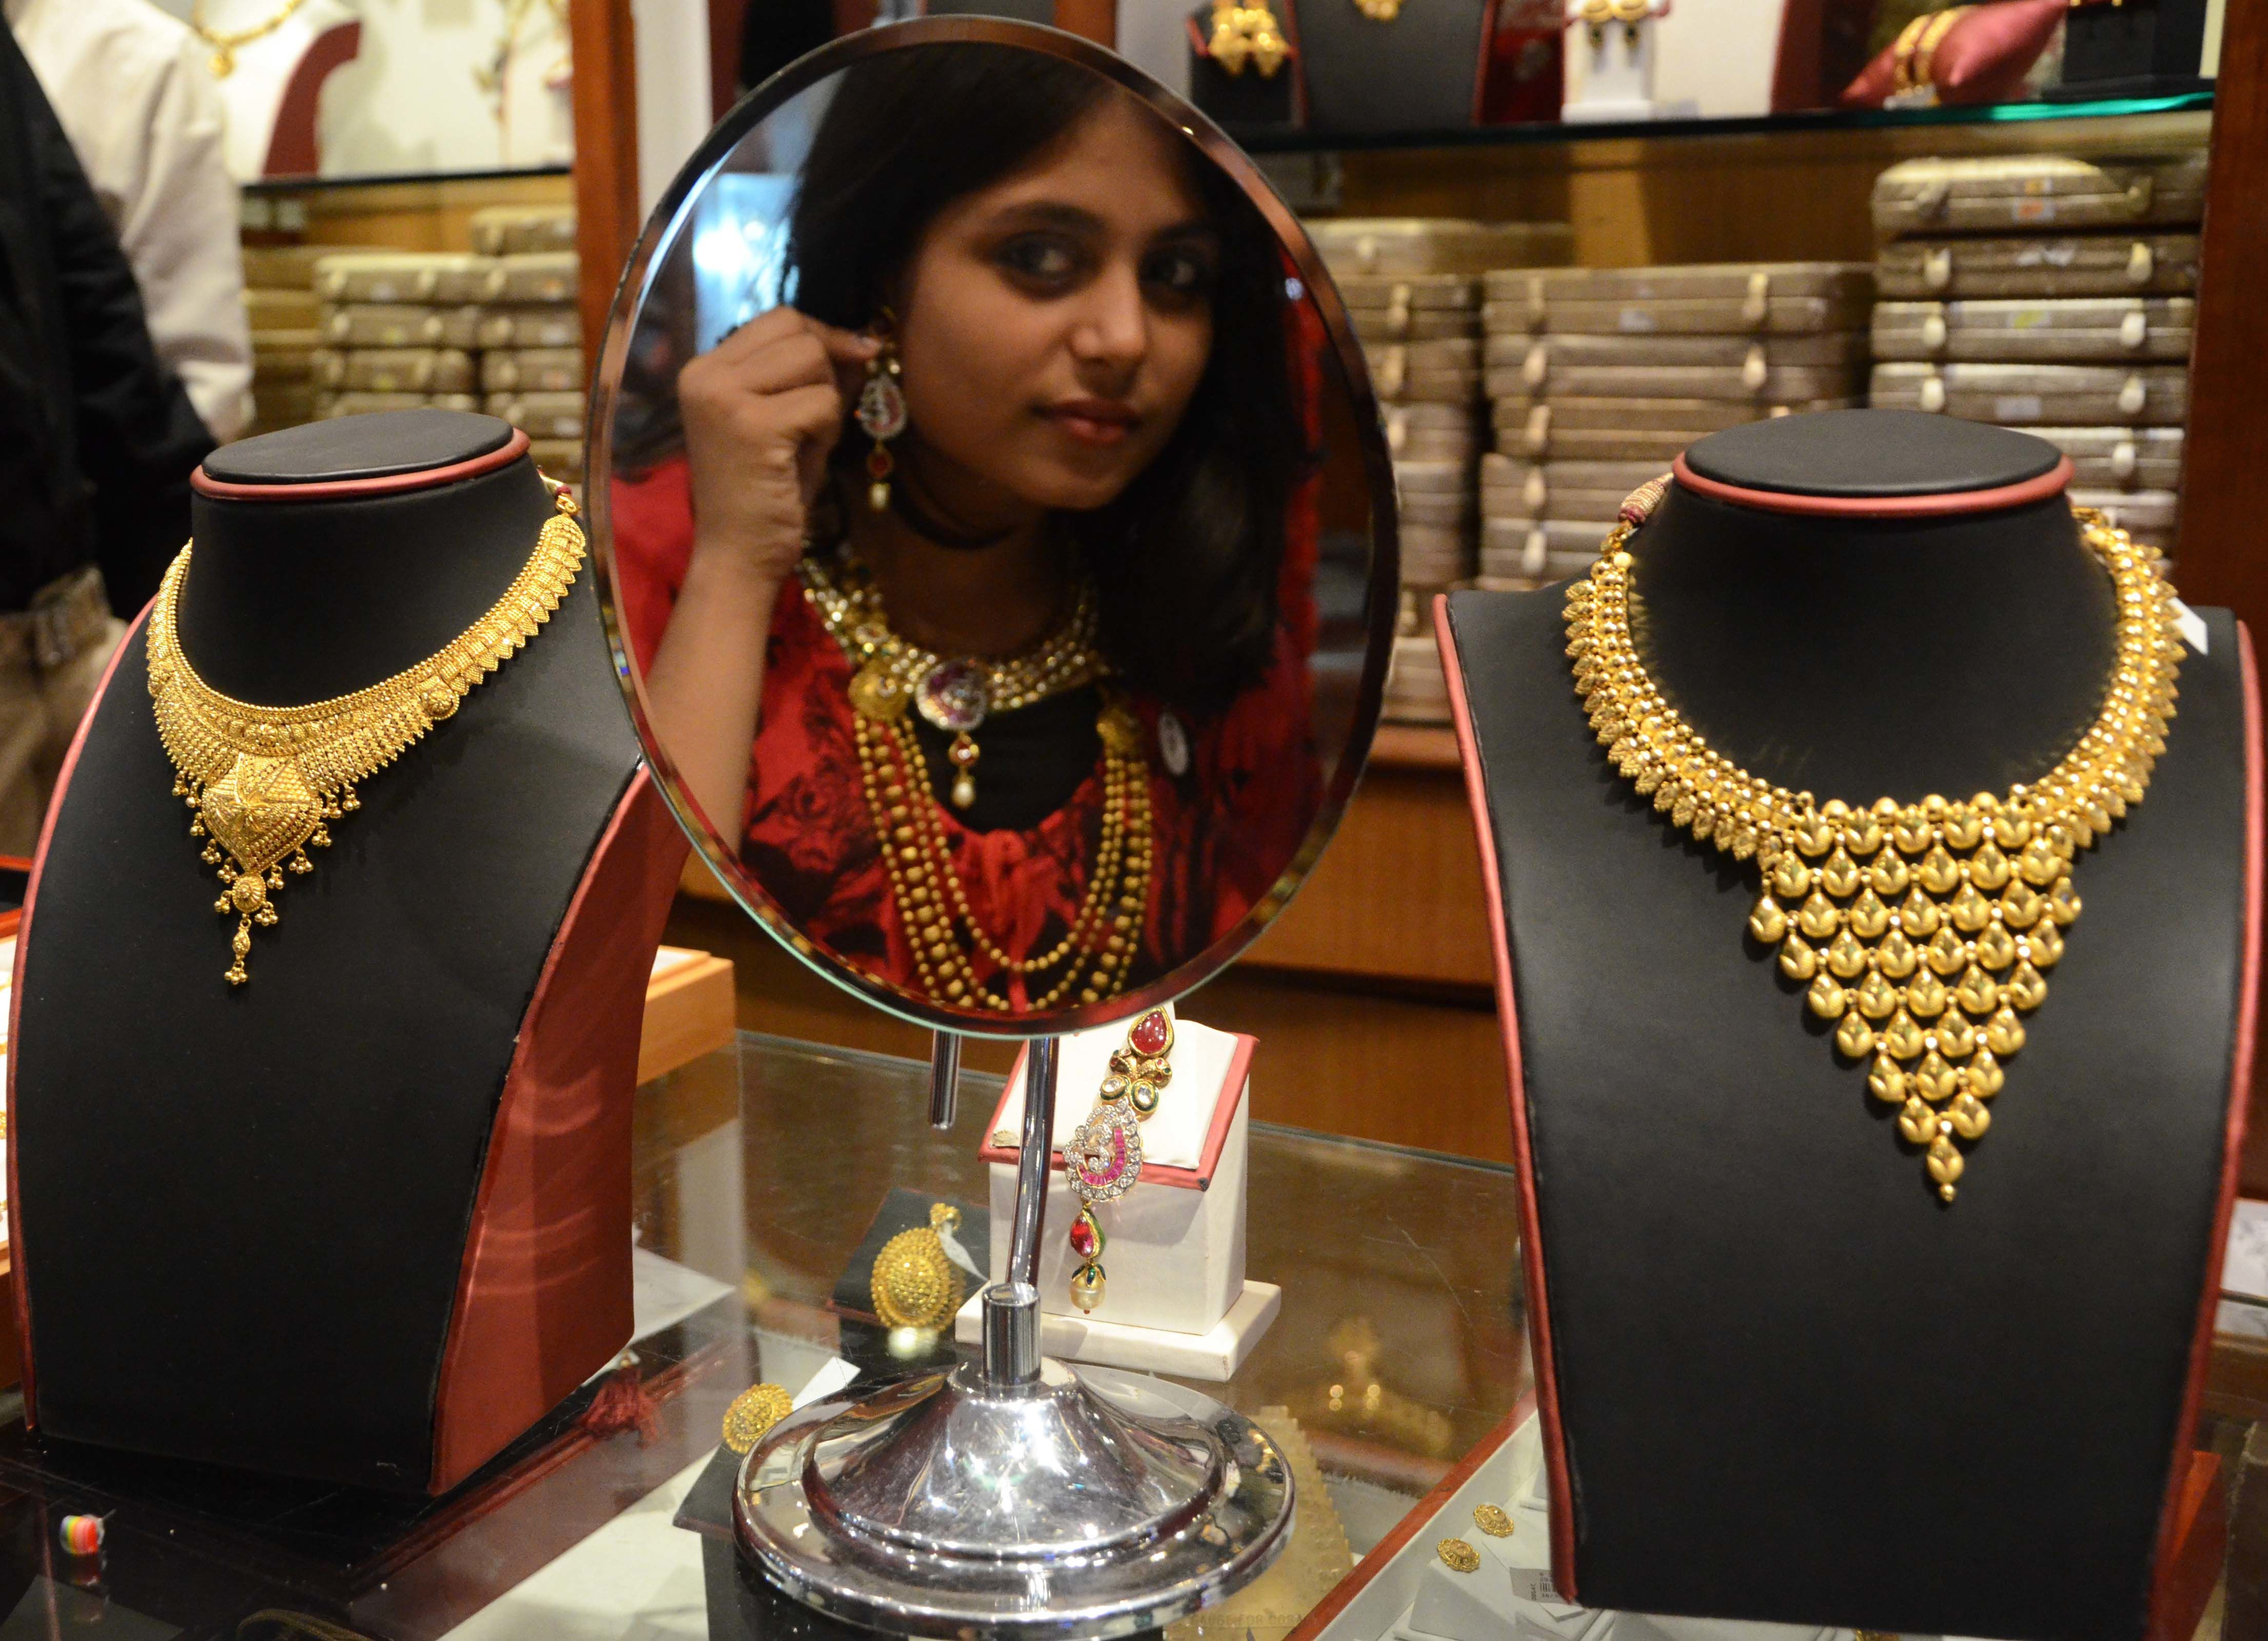 Buying gold in India.